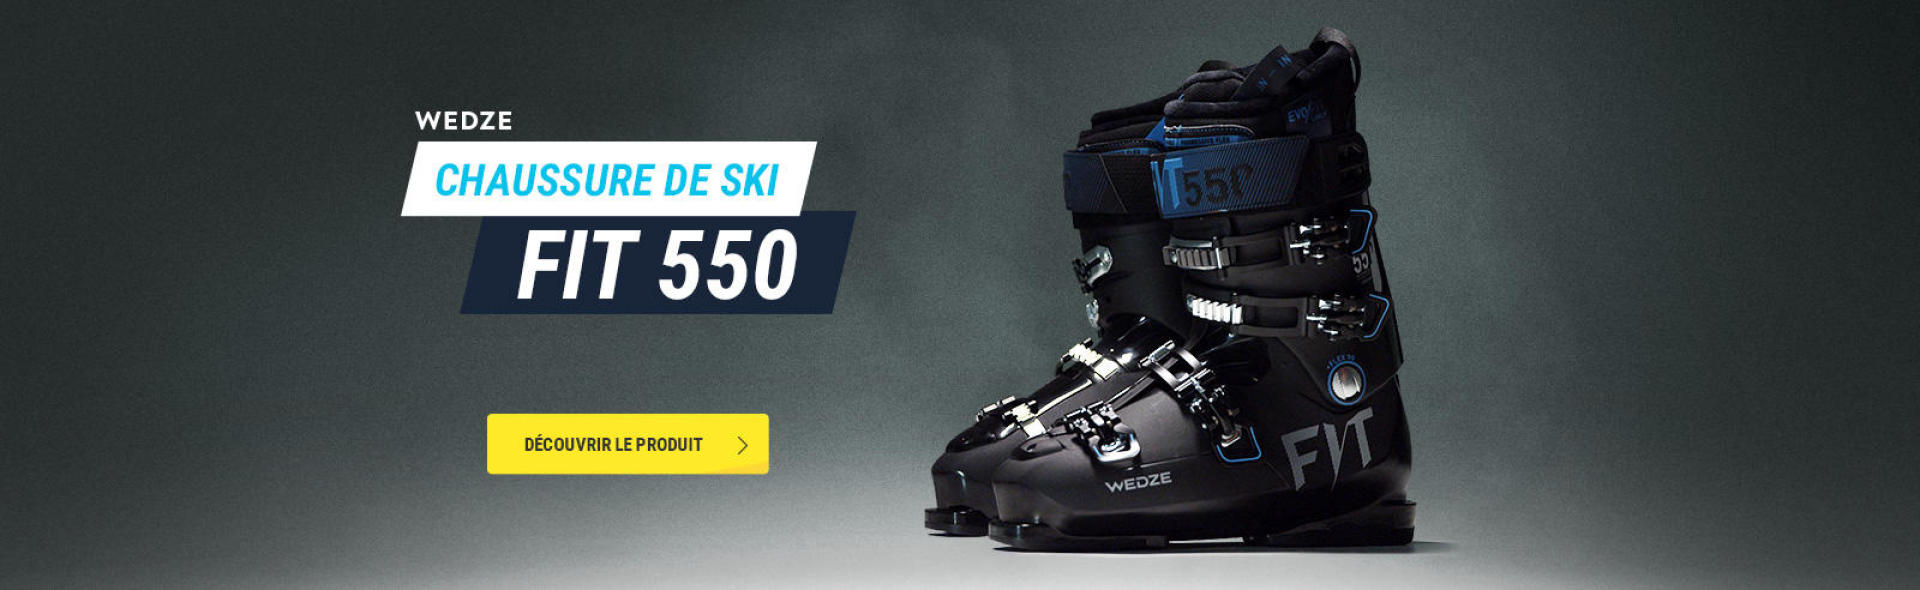 chaussure-fit-550